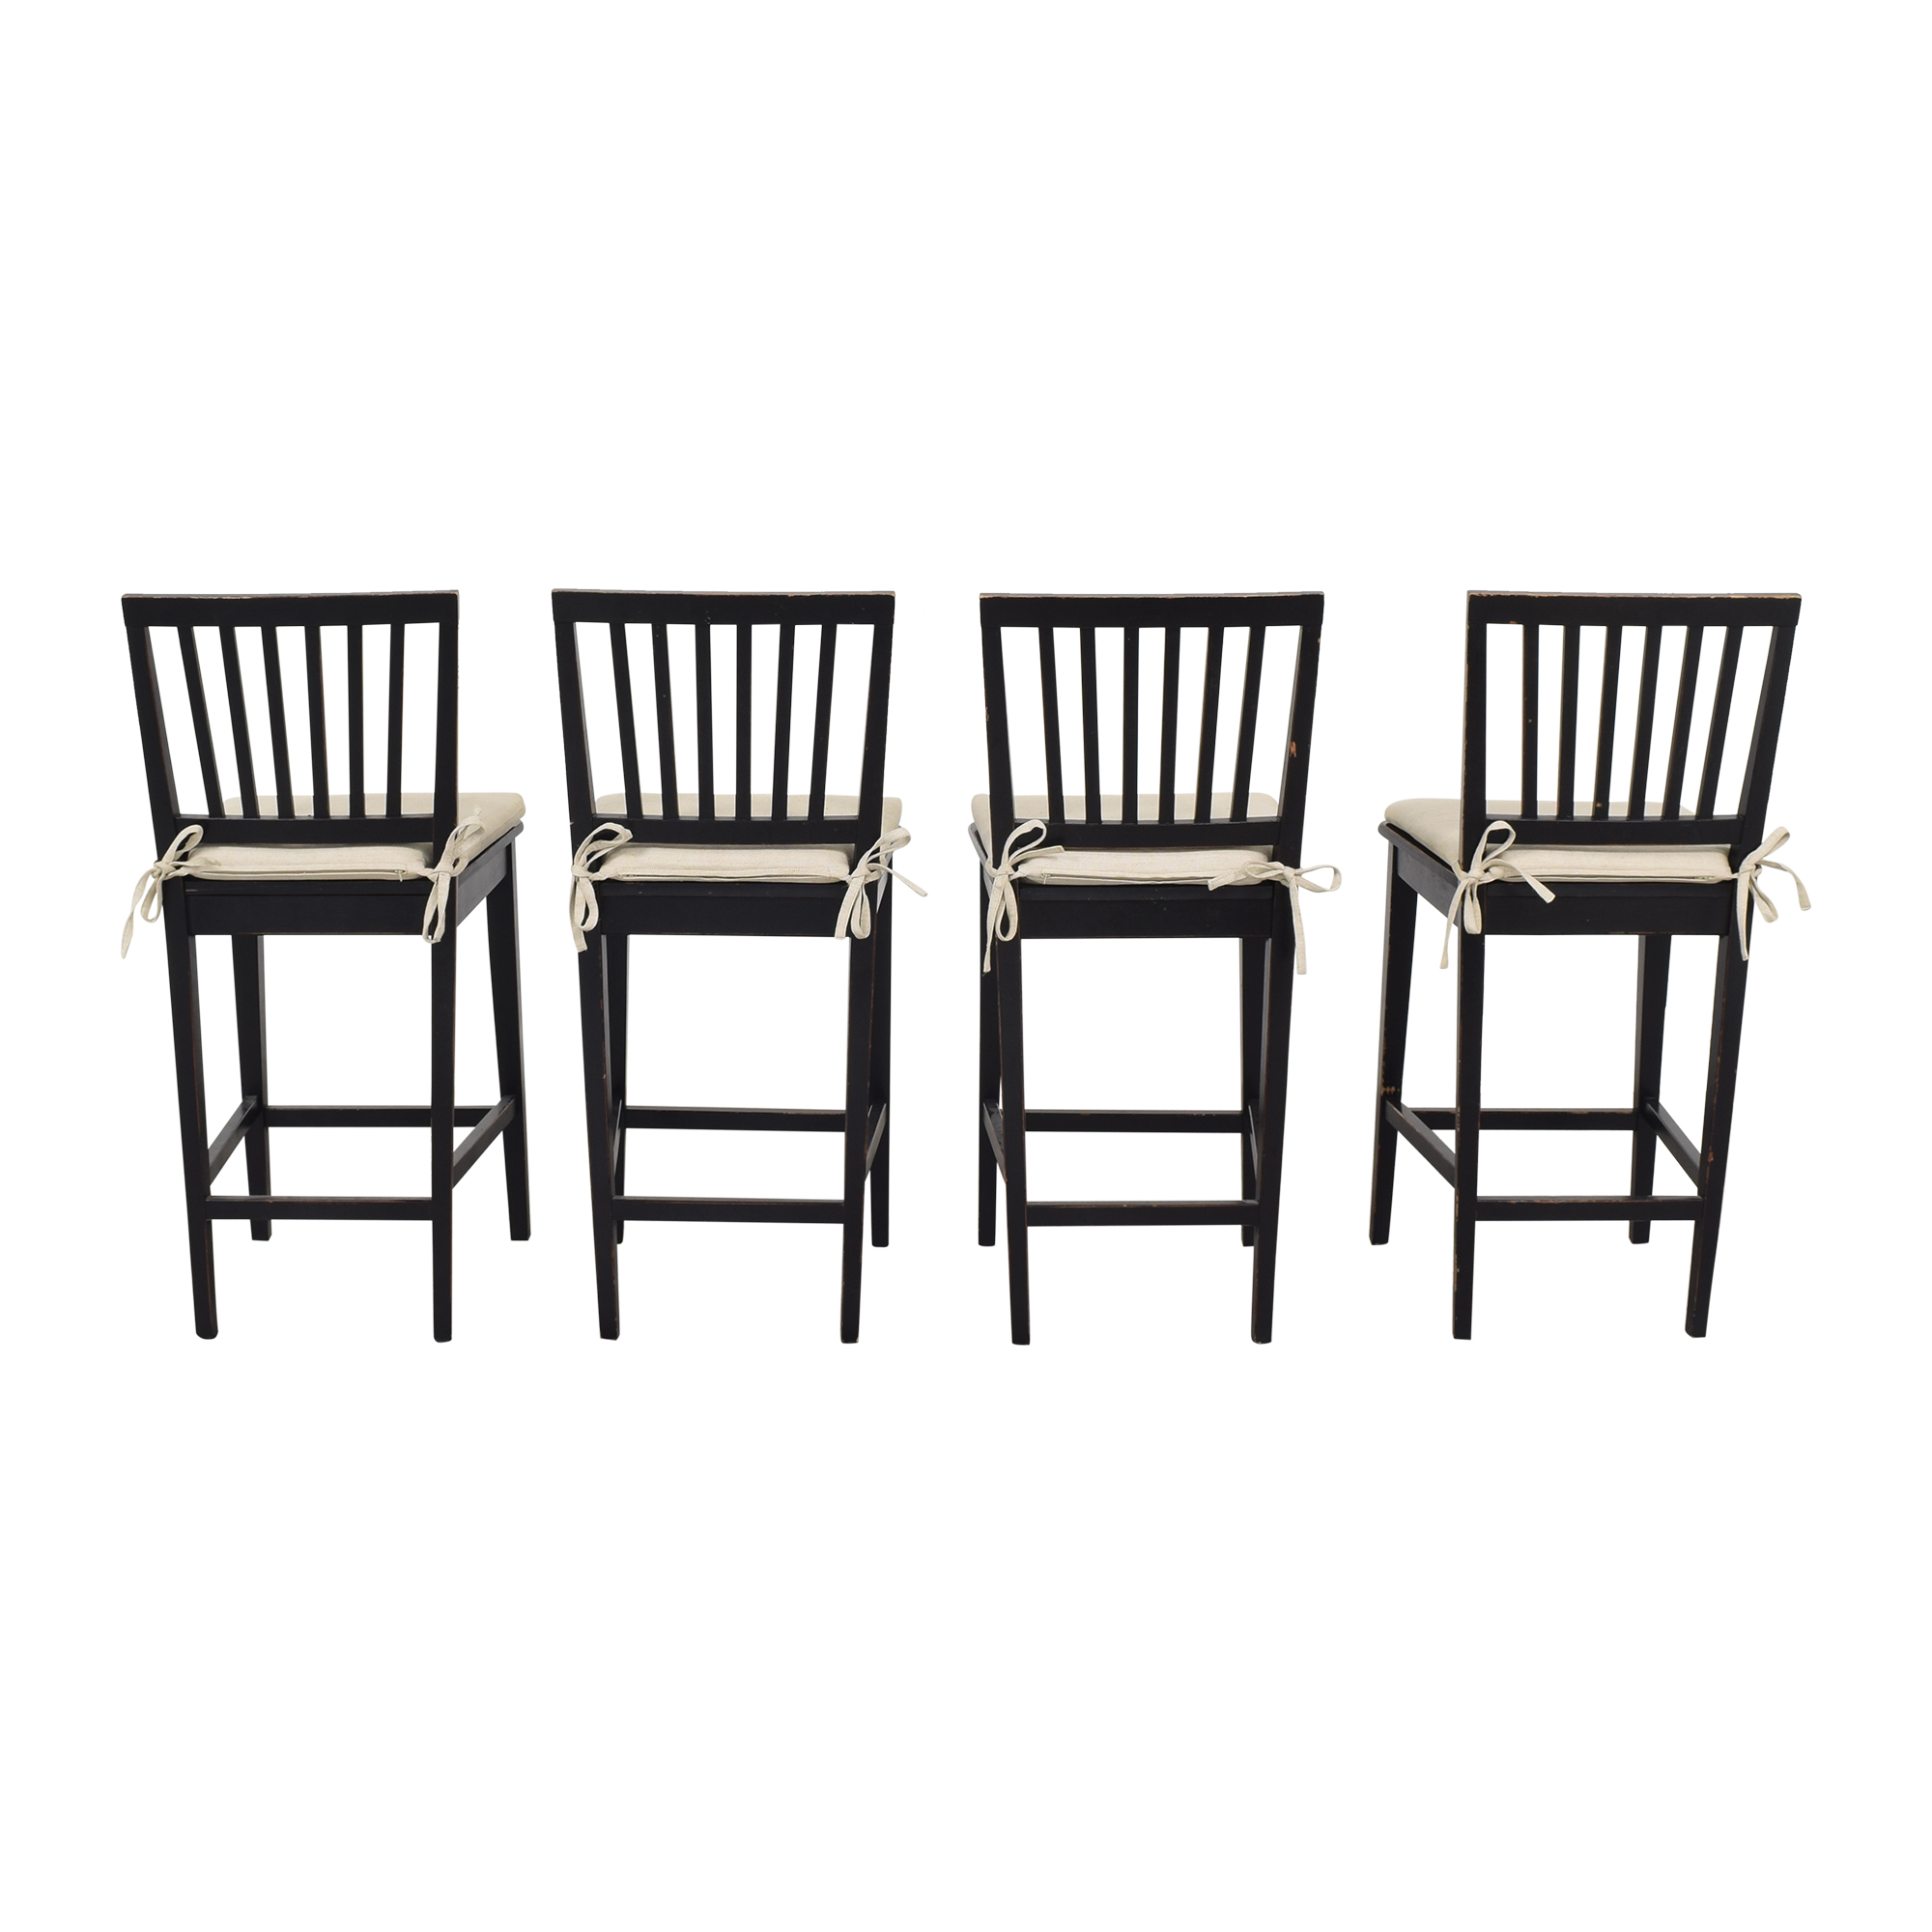 buy Crate & Barrel Buying & Design Counter Height Chairs Crate & Barrel Stools